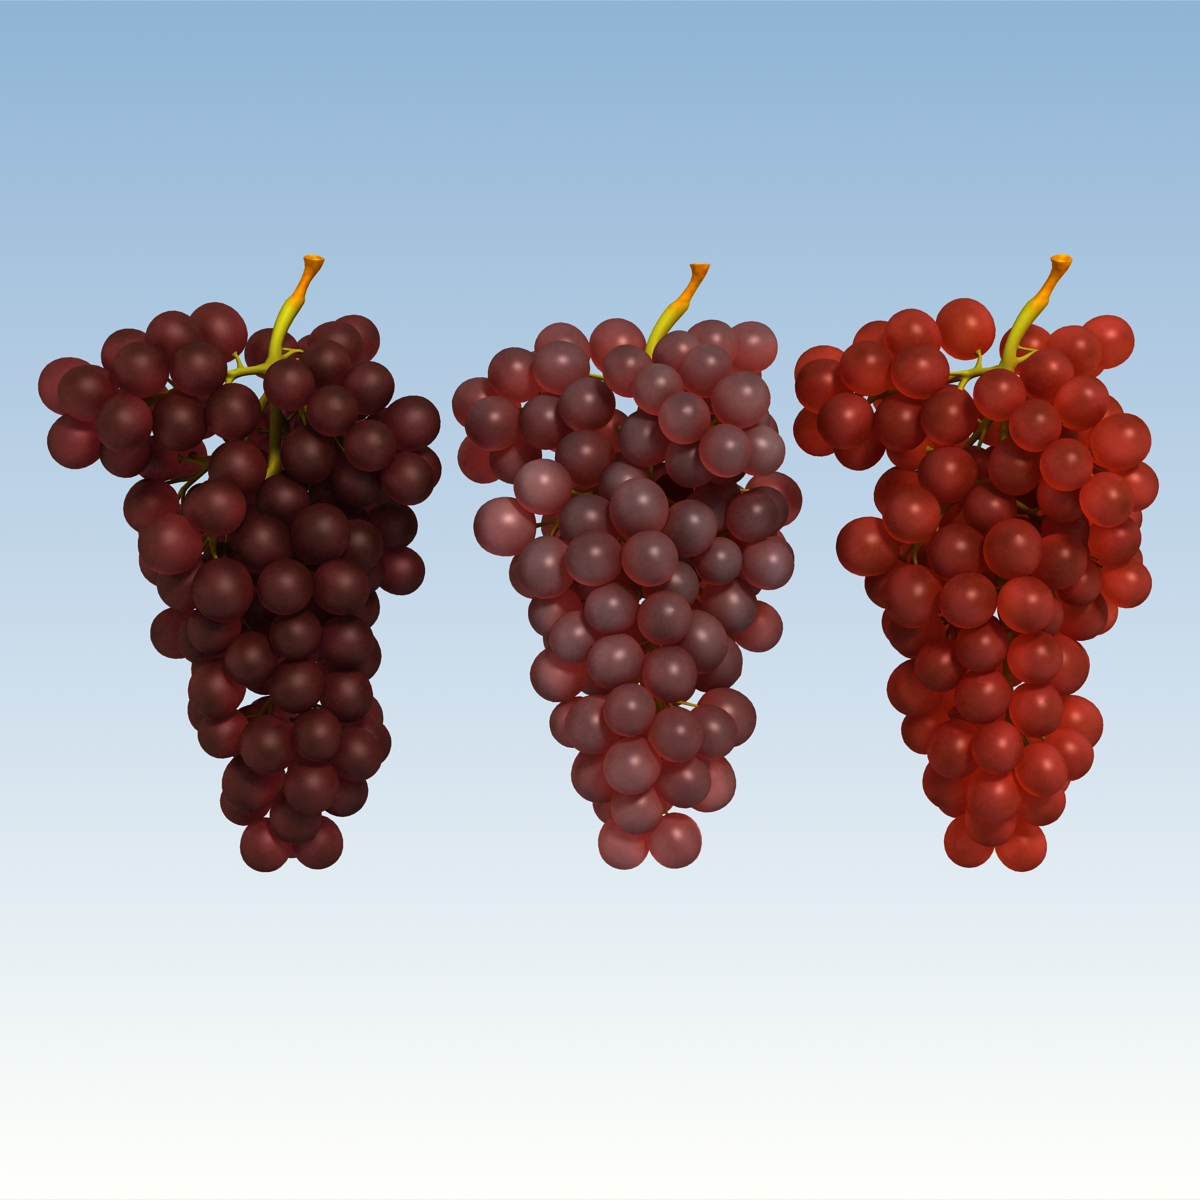 grapes red 3d model 3ds max fbx c4d lwo obj 204255